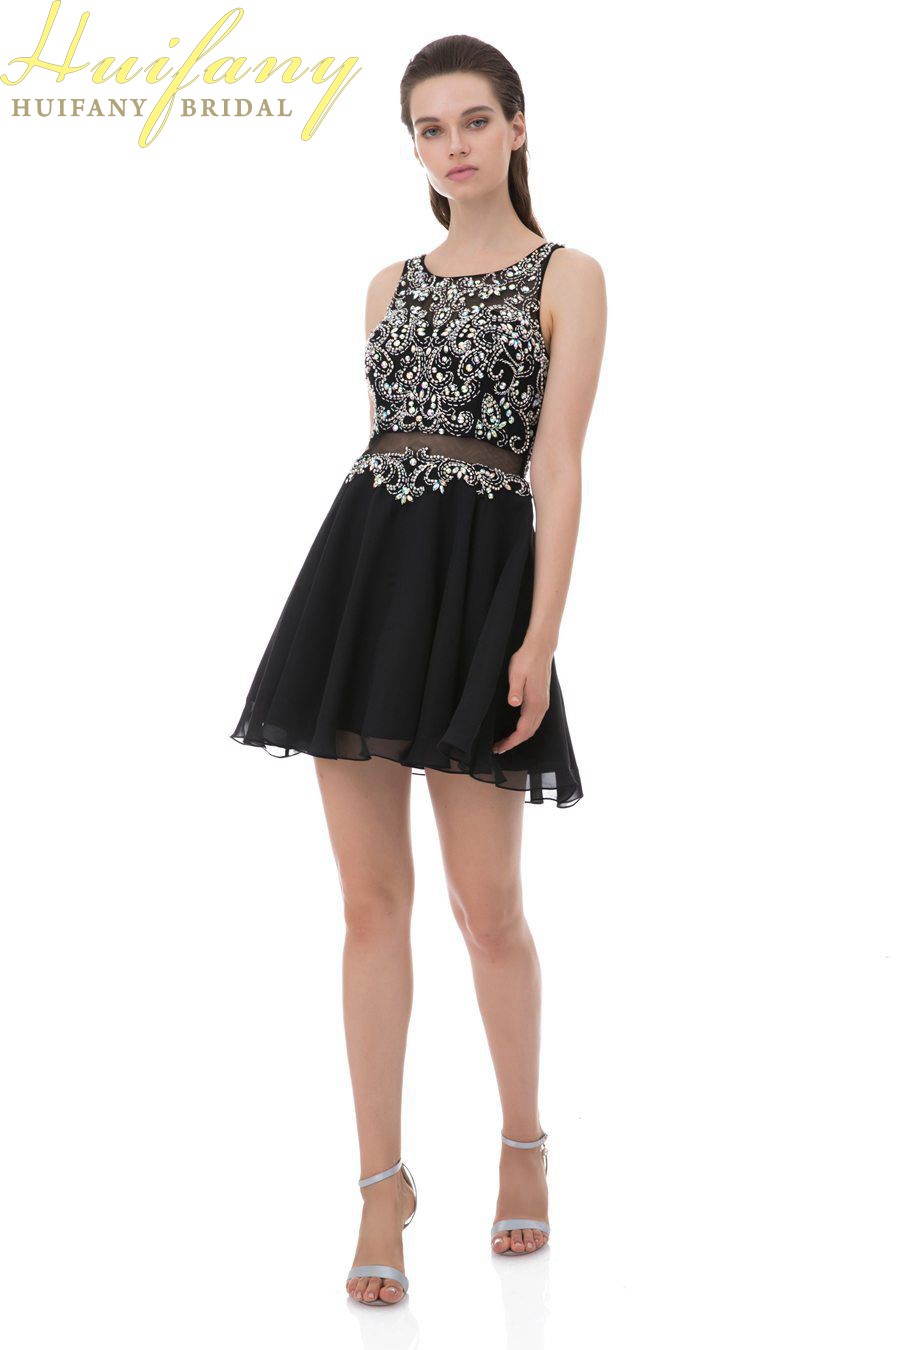 Short Scoop Beaded A-line Homecoming Dress Mini Illusion Party Outfits Sleeveless Ball Gown Rhinestone Chiffon Cocktail Dresses